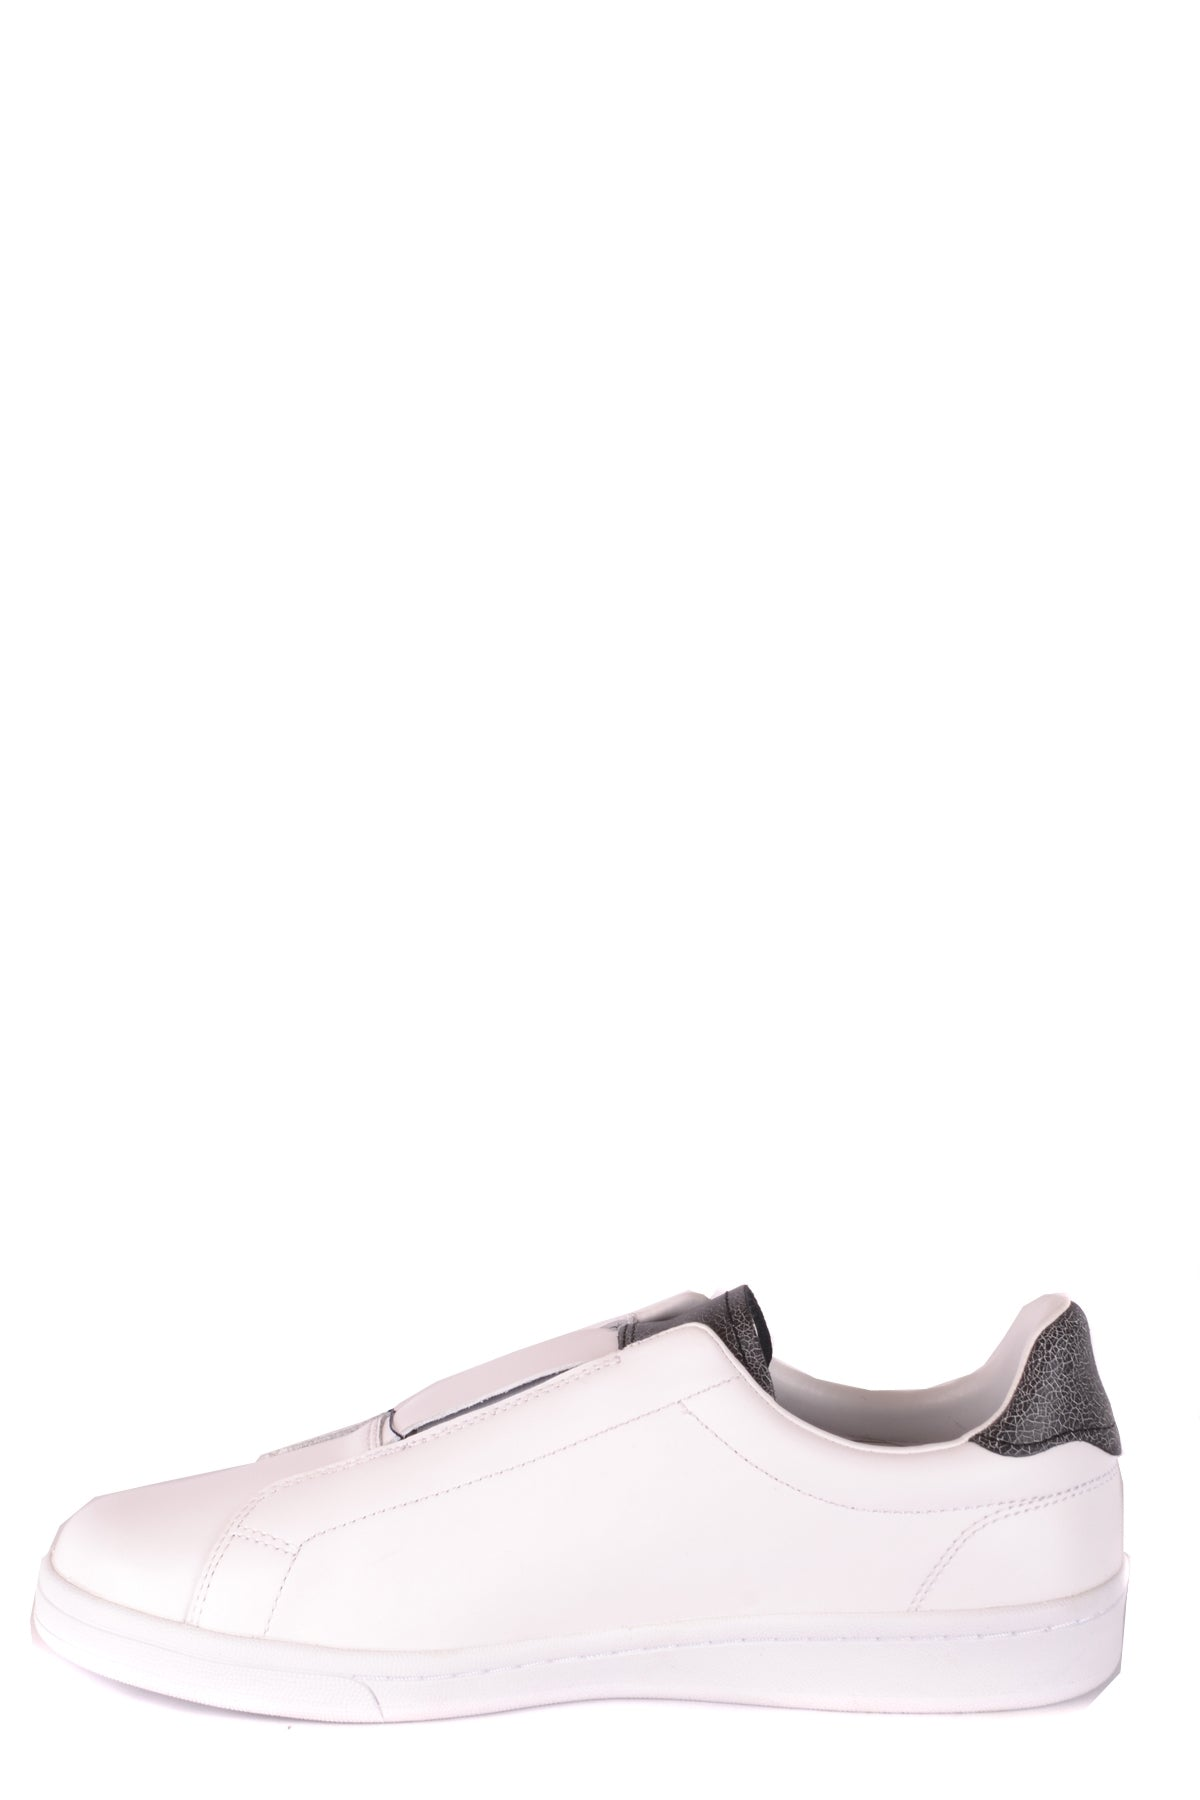 Shoes Fred Perry-Sneakers - Shoes-Product Details Type Of Accessory: ShoesTerms: New With LabelYear: 2018Main Color: WhiteGender: ManMade In: VietnamManufacturer Part Number: B721Size: UkSeason: Spring / SummerComposition: Leather 100%-Keyomi-Sook